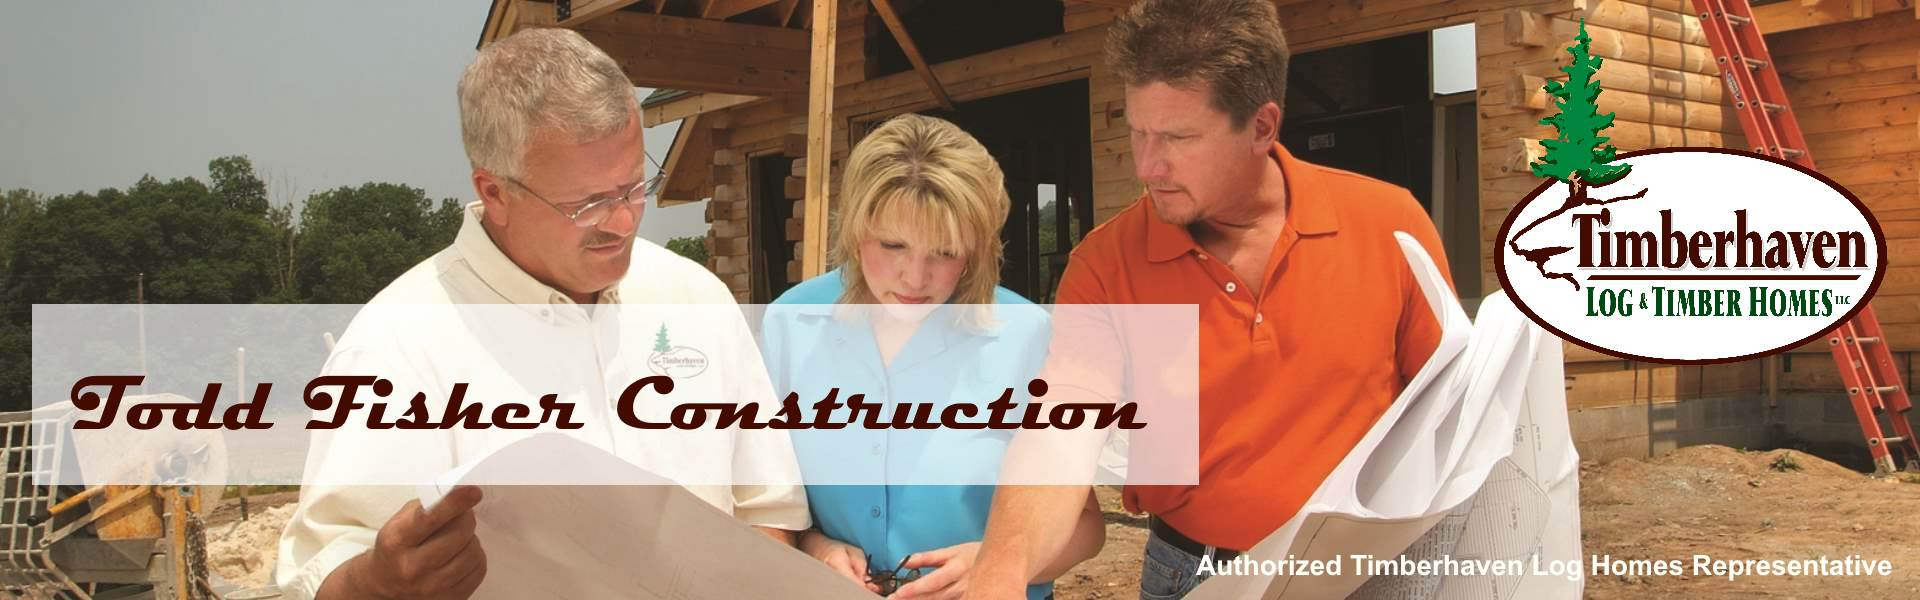 Todd Fisher Construction